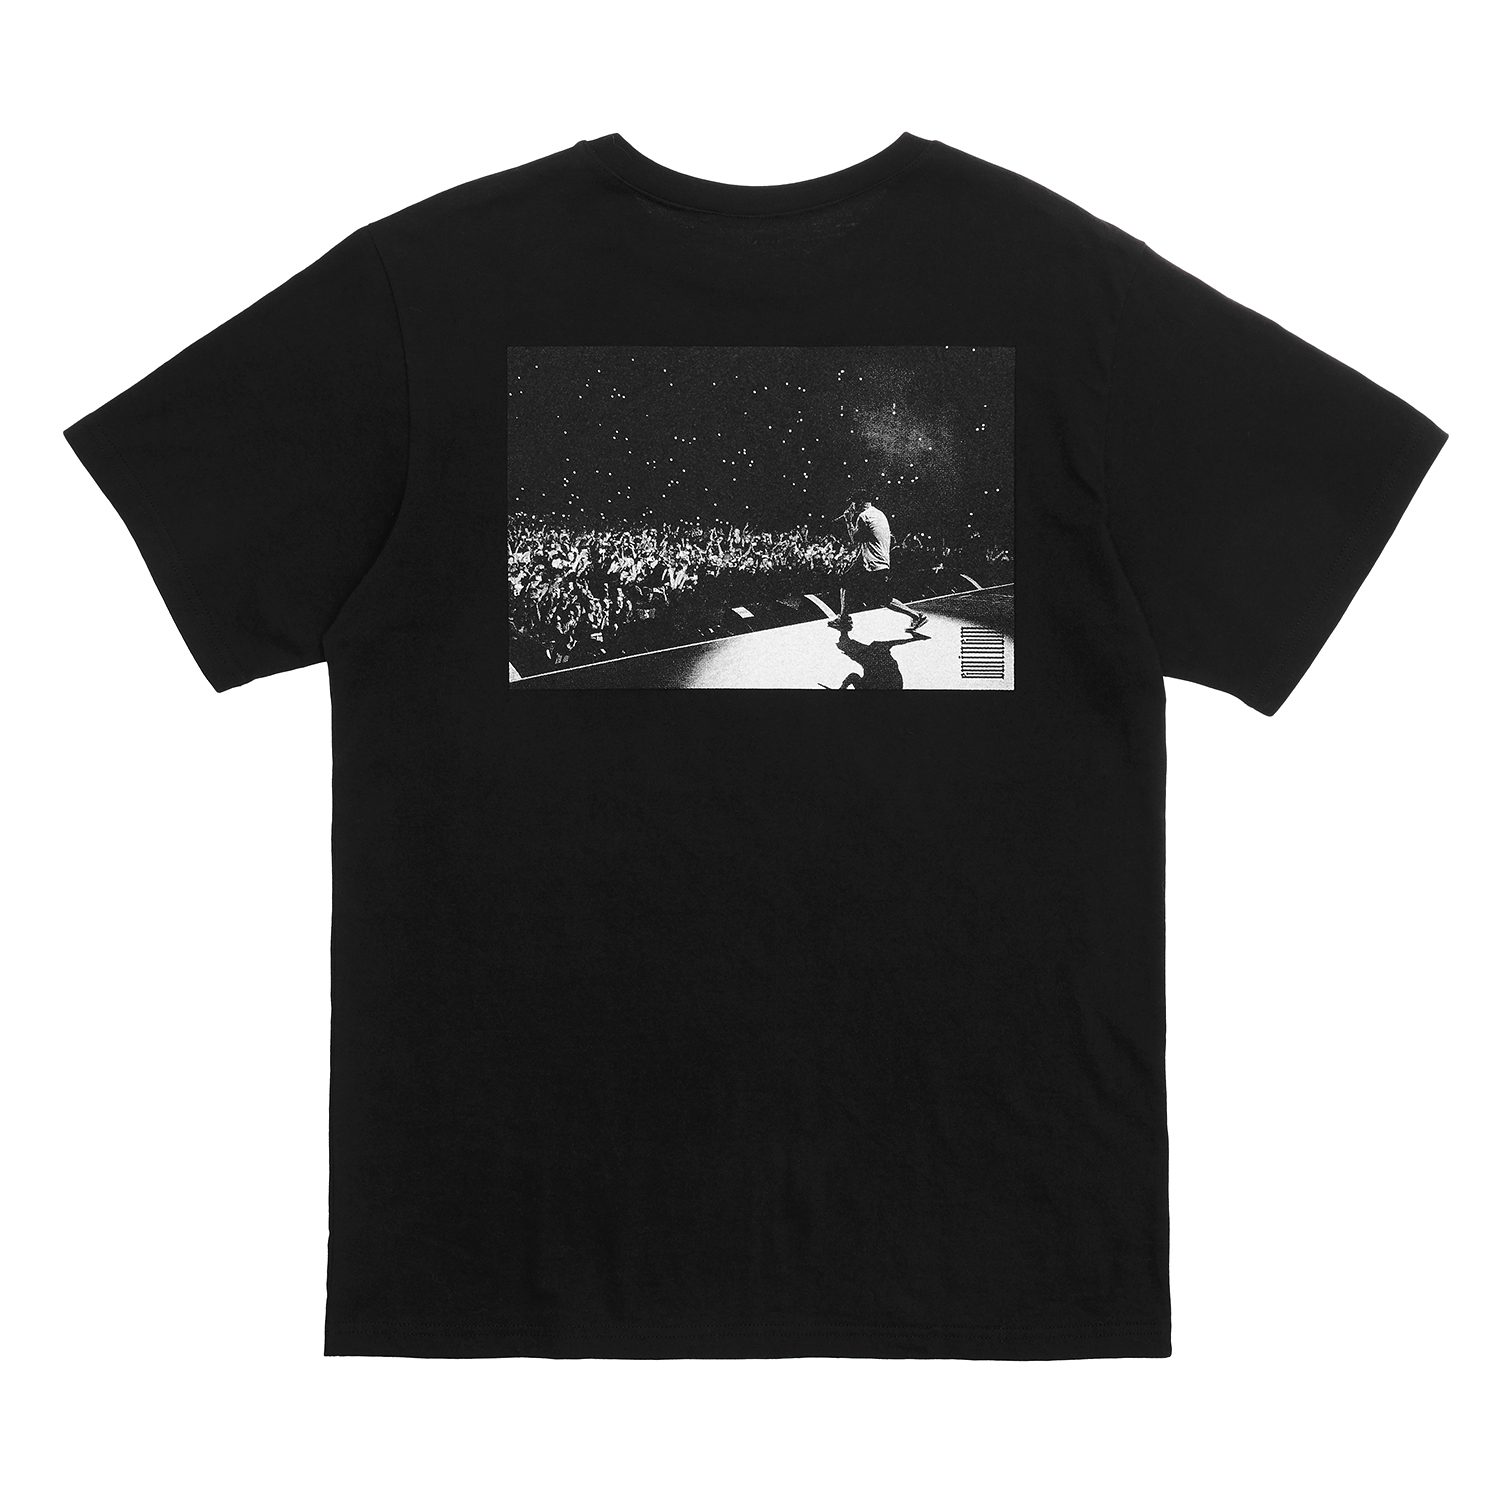 [Bravado]EMINEM CROWD SHOT TEE BK